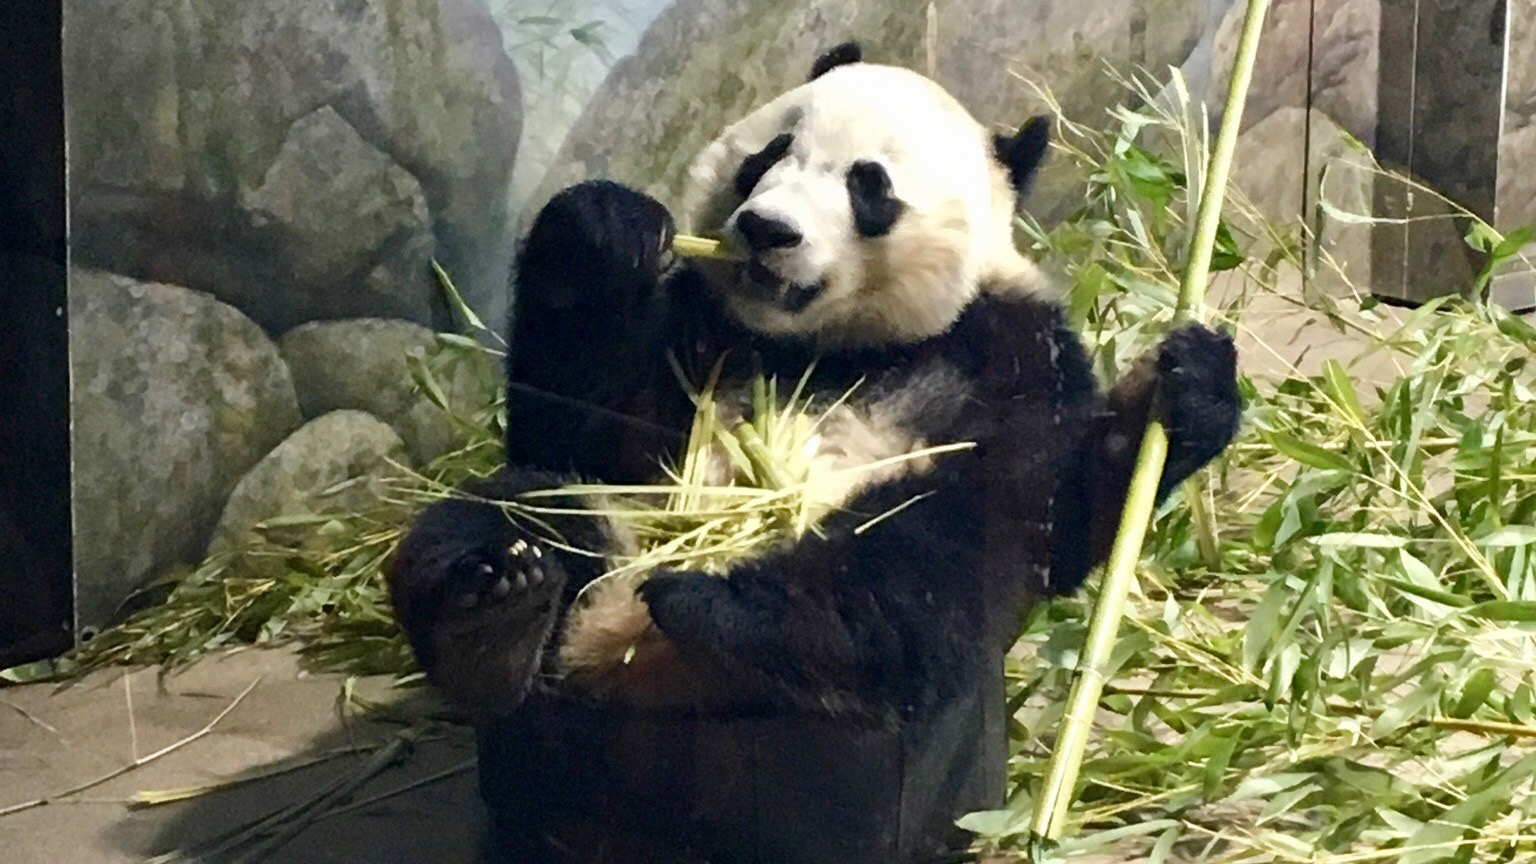 One of the three Giant Pandas in its enclosure at the Smithsonian National Zoological Park.